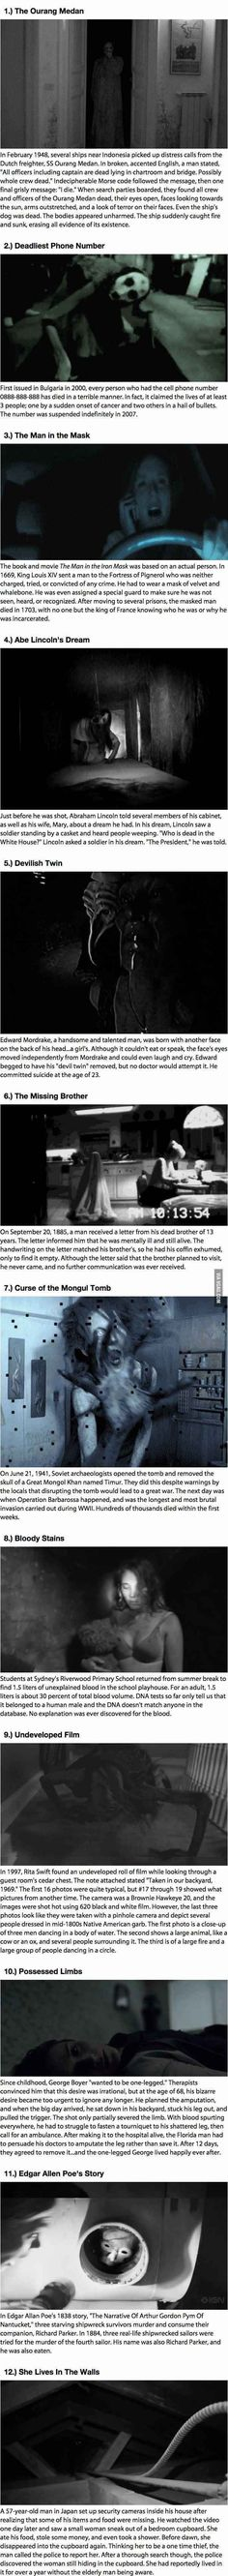 You are soon going to regret reading these 12 Creepy Stories!